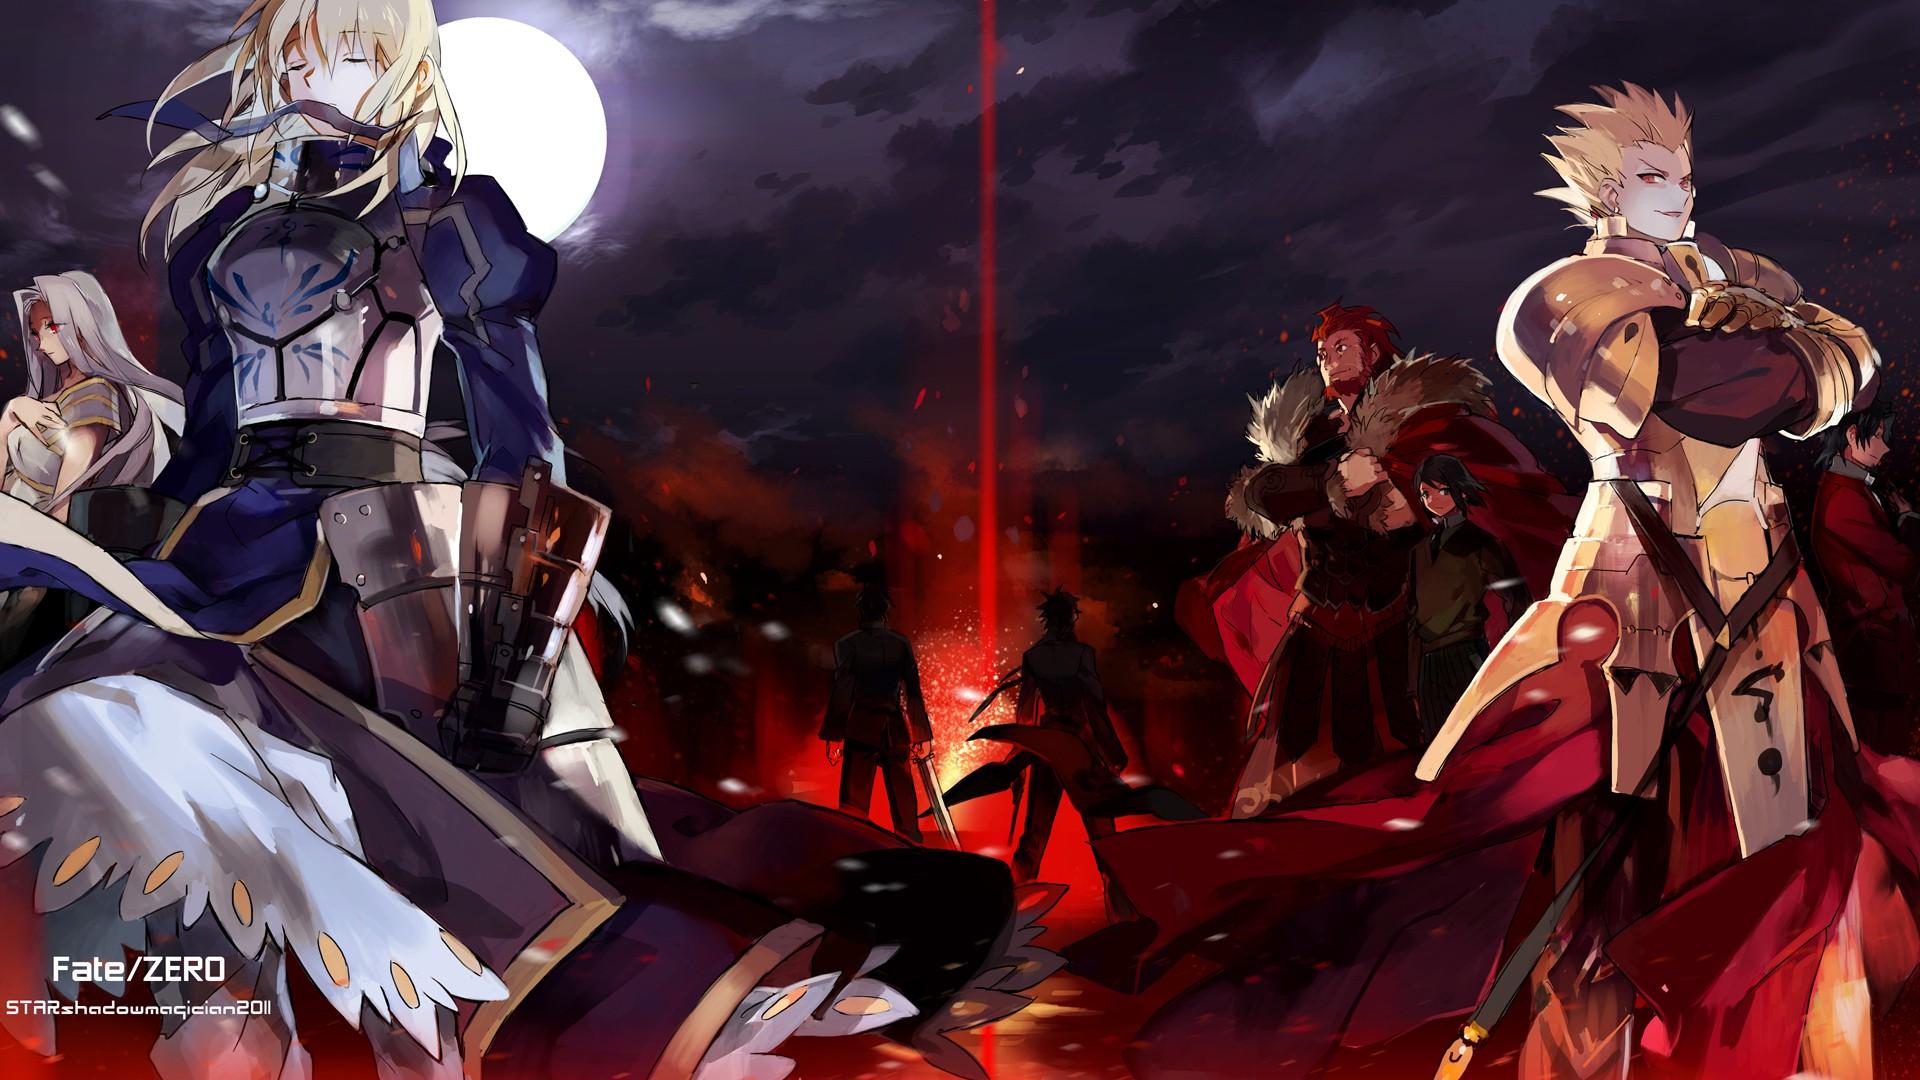 images Fate Stay Night HD wallpaper and background photos 32290756 1920x1080